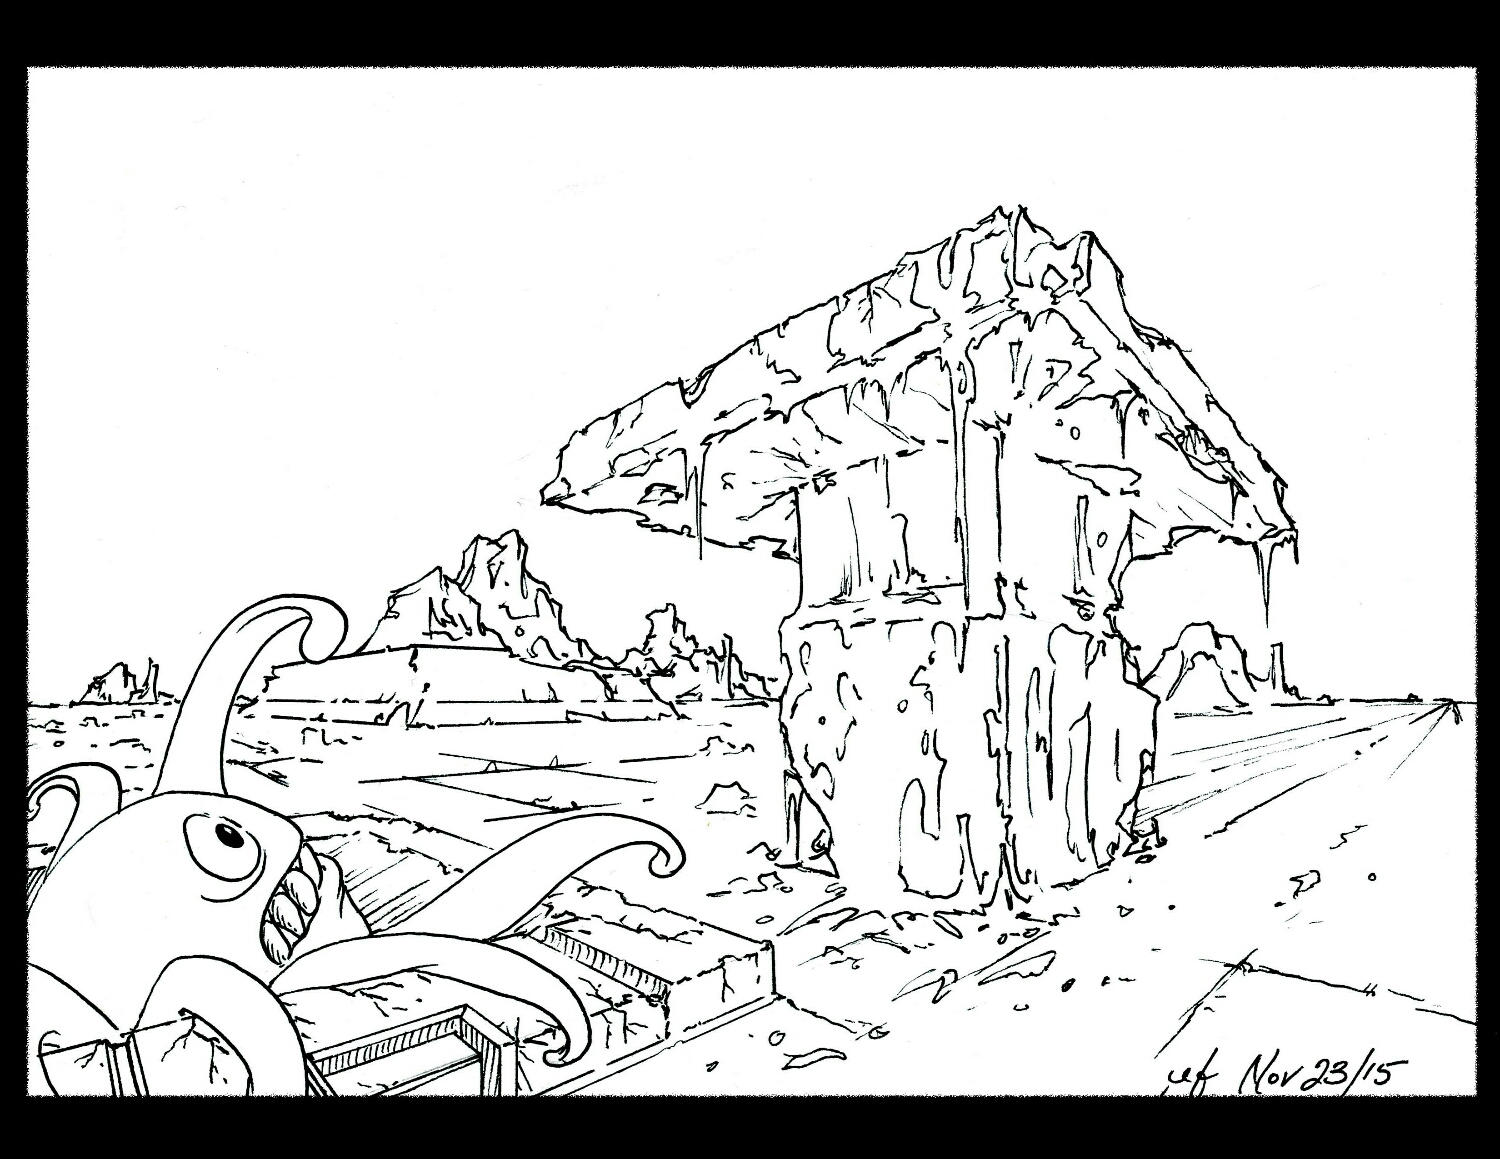 Completed ink, scanned and ready for color.